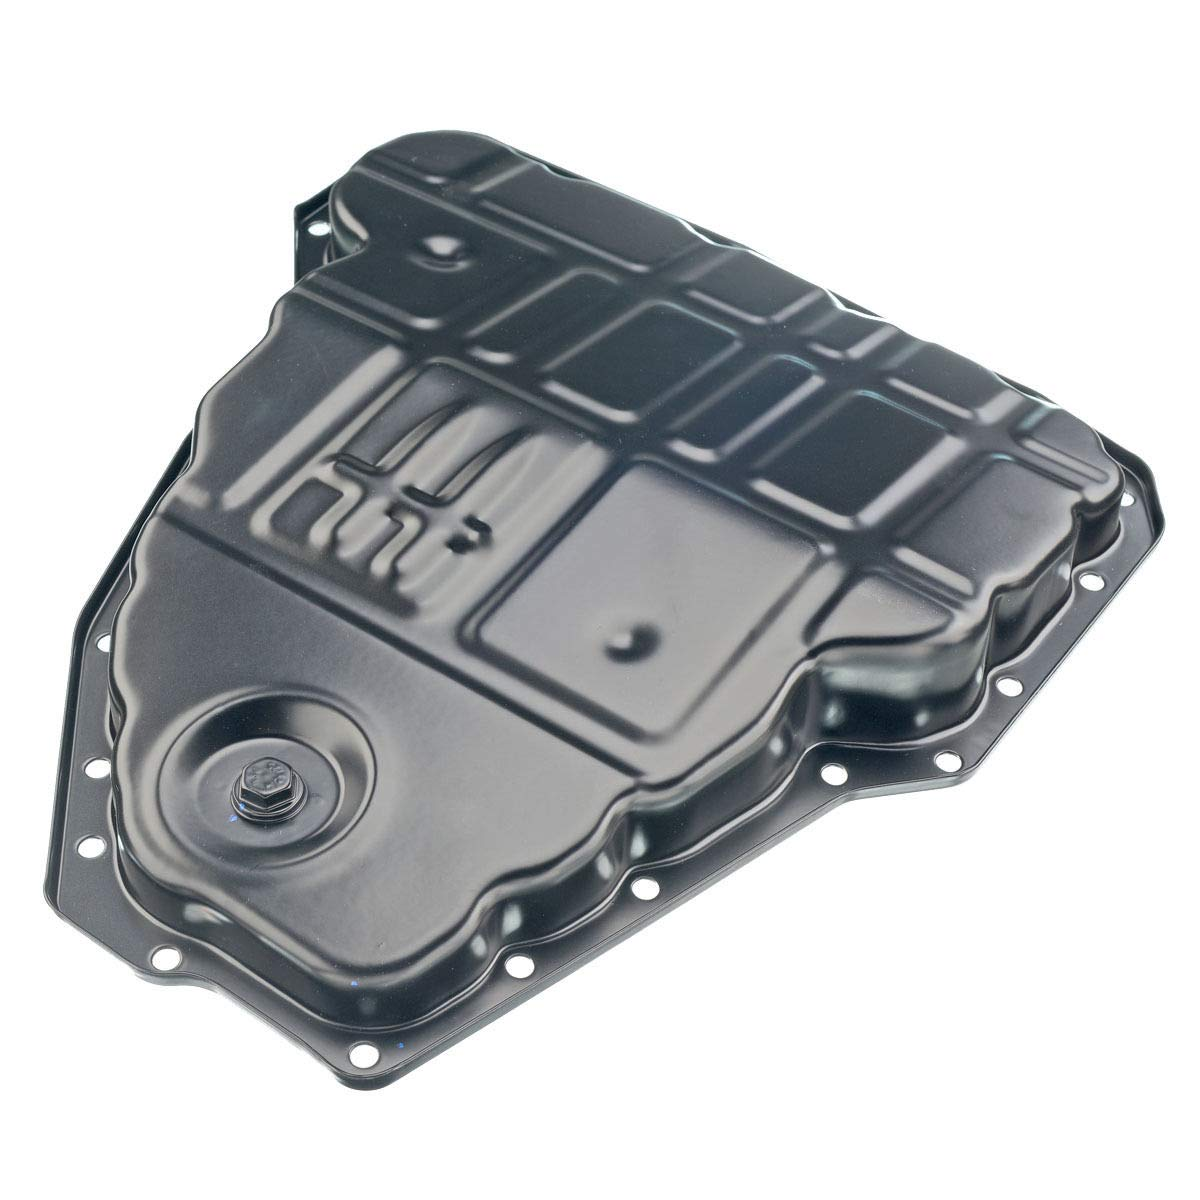 Transmission Oil Pan for Nissan Altima Maxima Sentra Quest Infiniti I30 I35